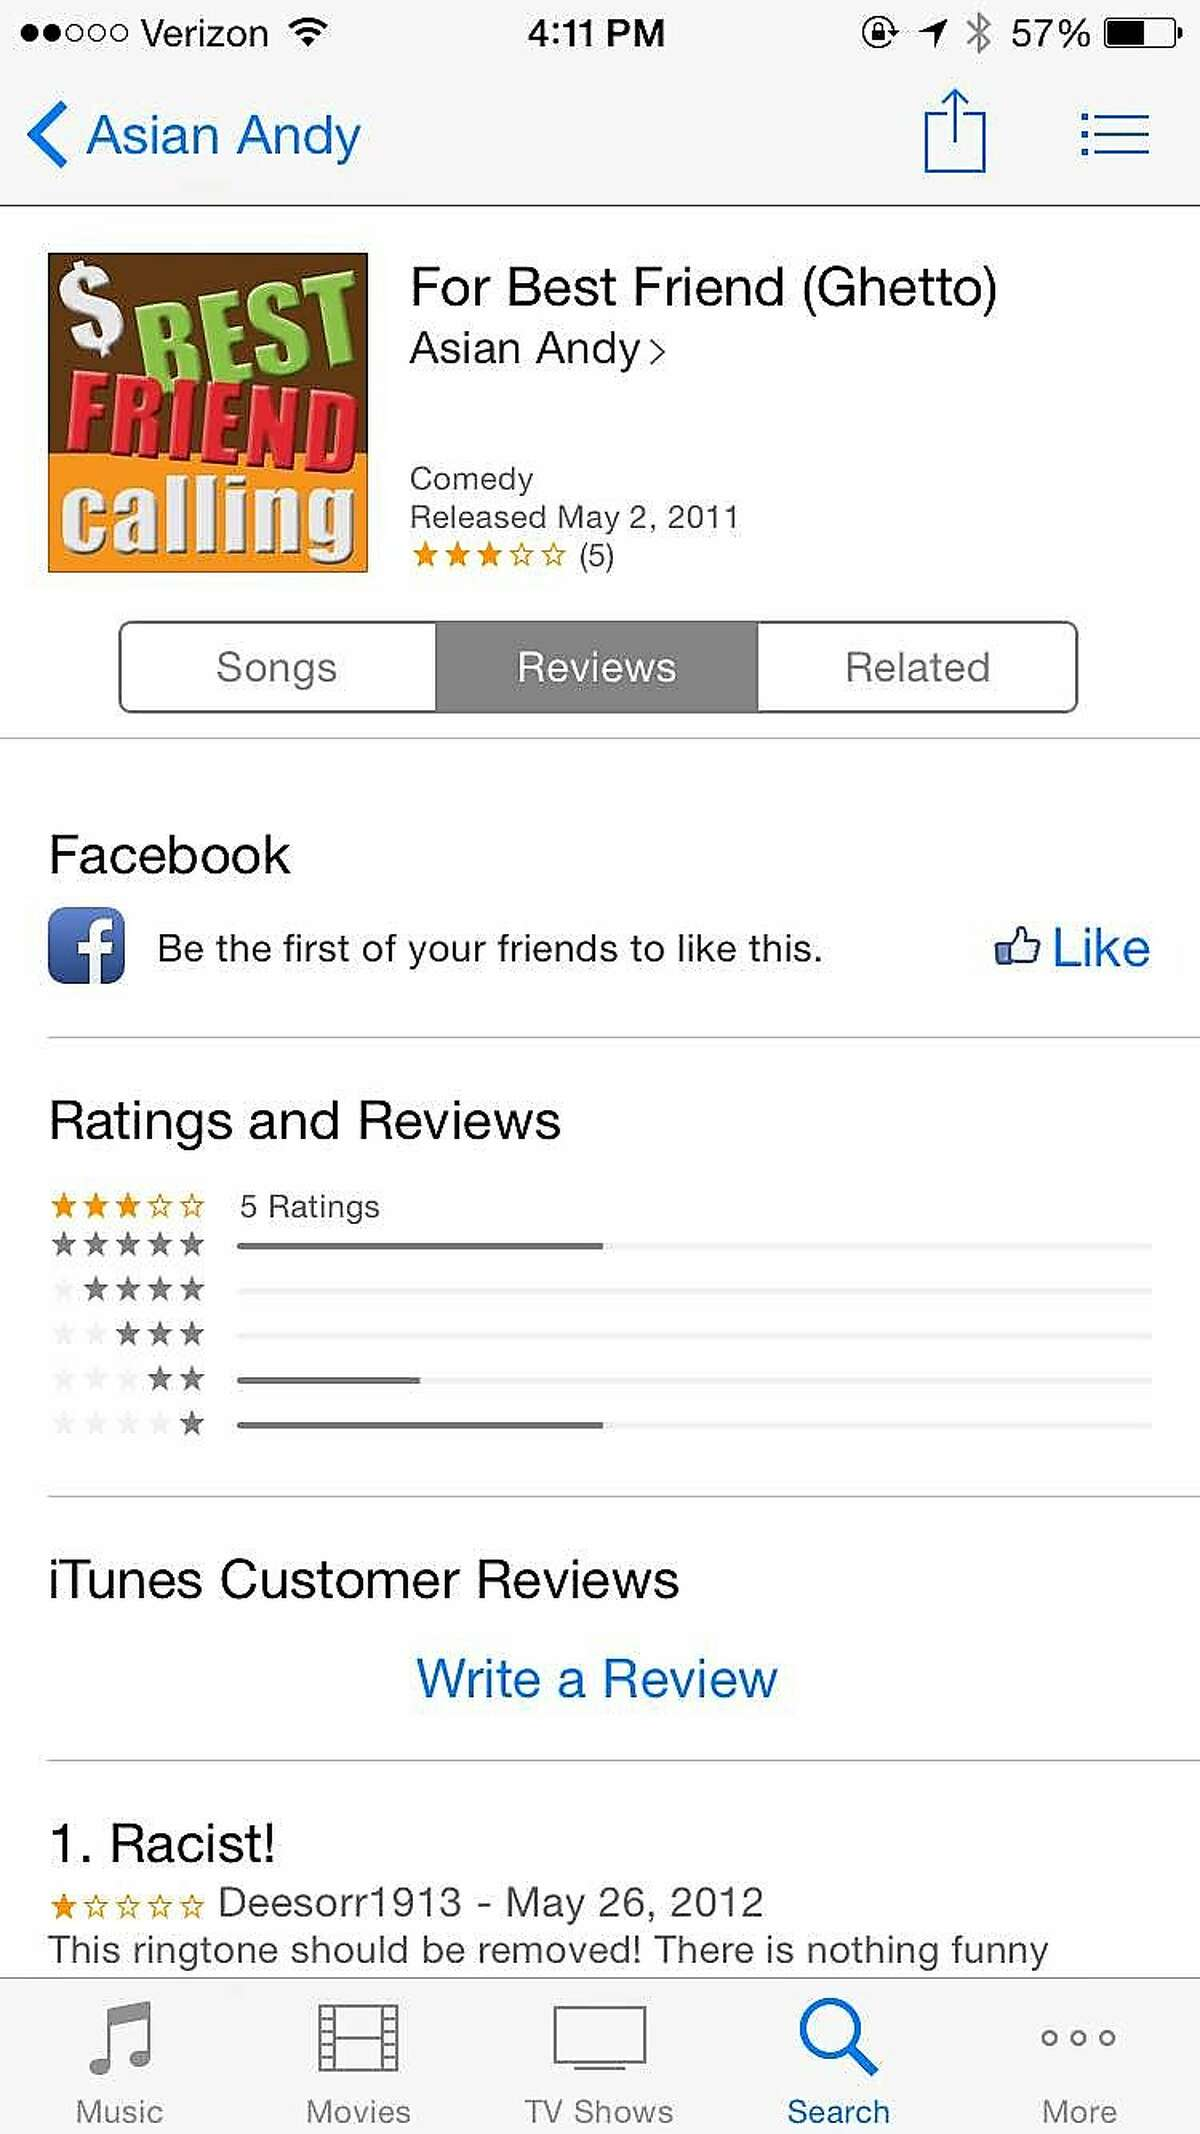 """A screenshot of the ringtone, """"For Best Friend (Ghetto),"""" which was available for purchase on iTunes since May 2, 2011. Apple's terms of use prohibit discriminatory ringtones, however many, like this, were allowed to exist unchecked for years. Apple removed dozens of offensive ringtones after a call from the San Francisco Chronicle this week."""